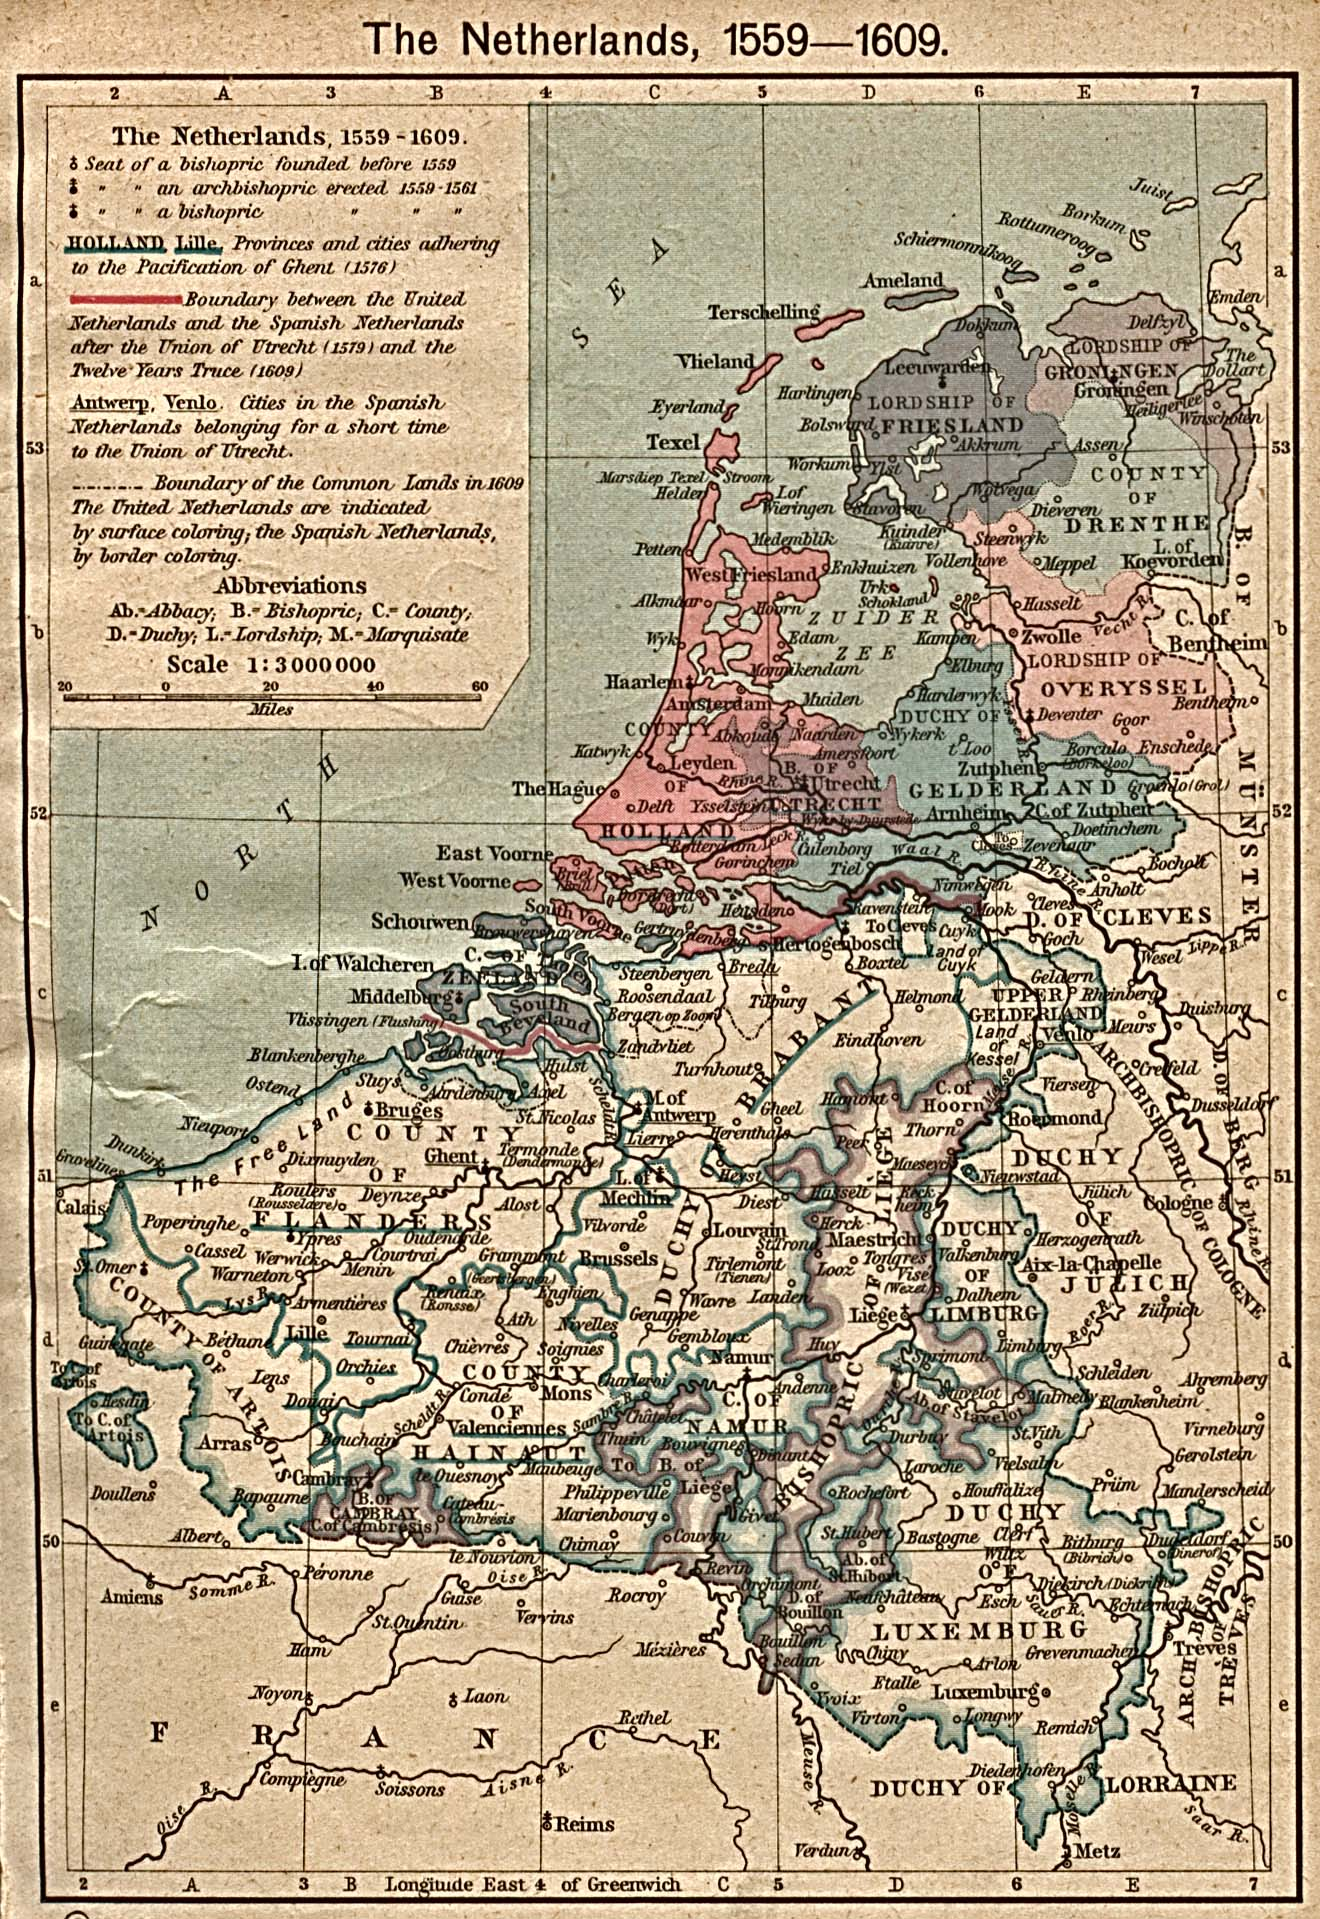 The Netherlands Map 1559 - 1609